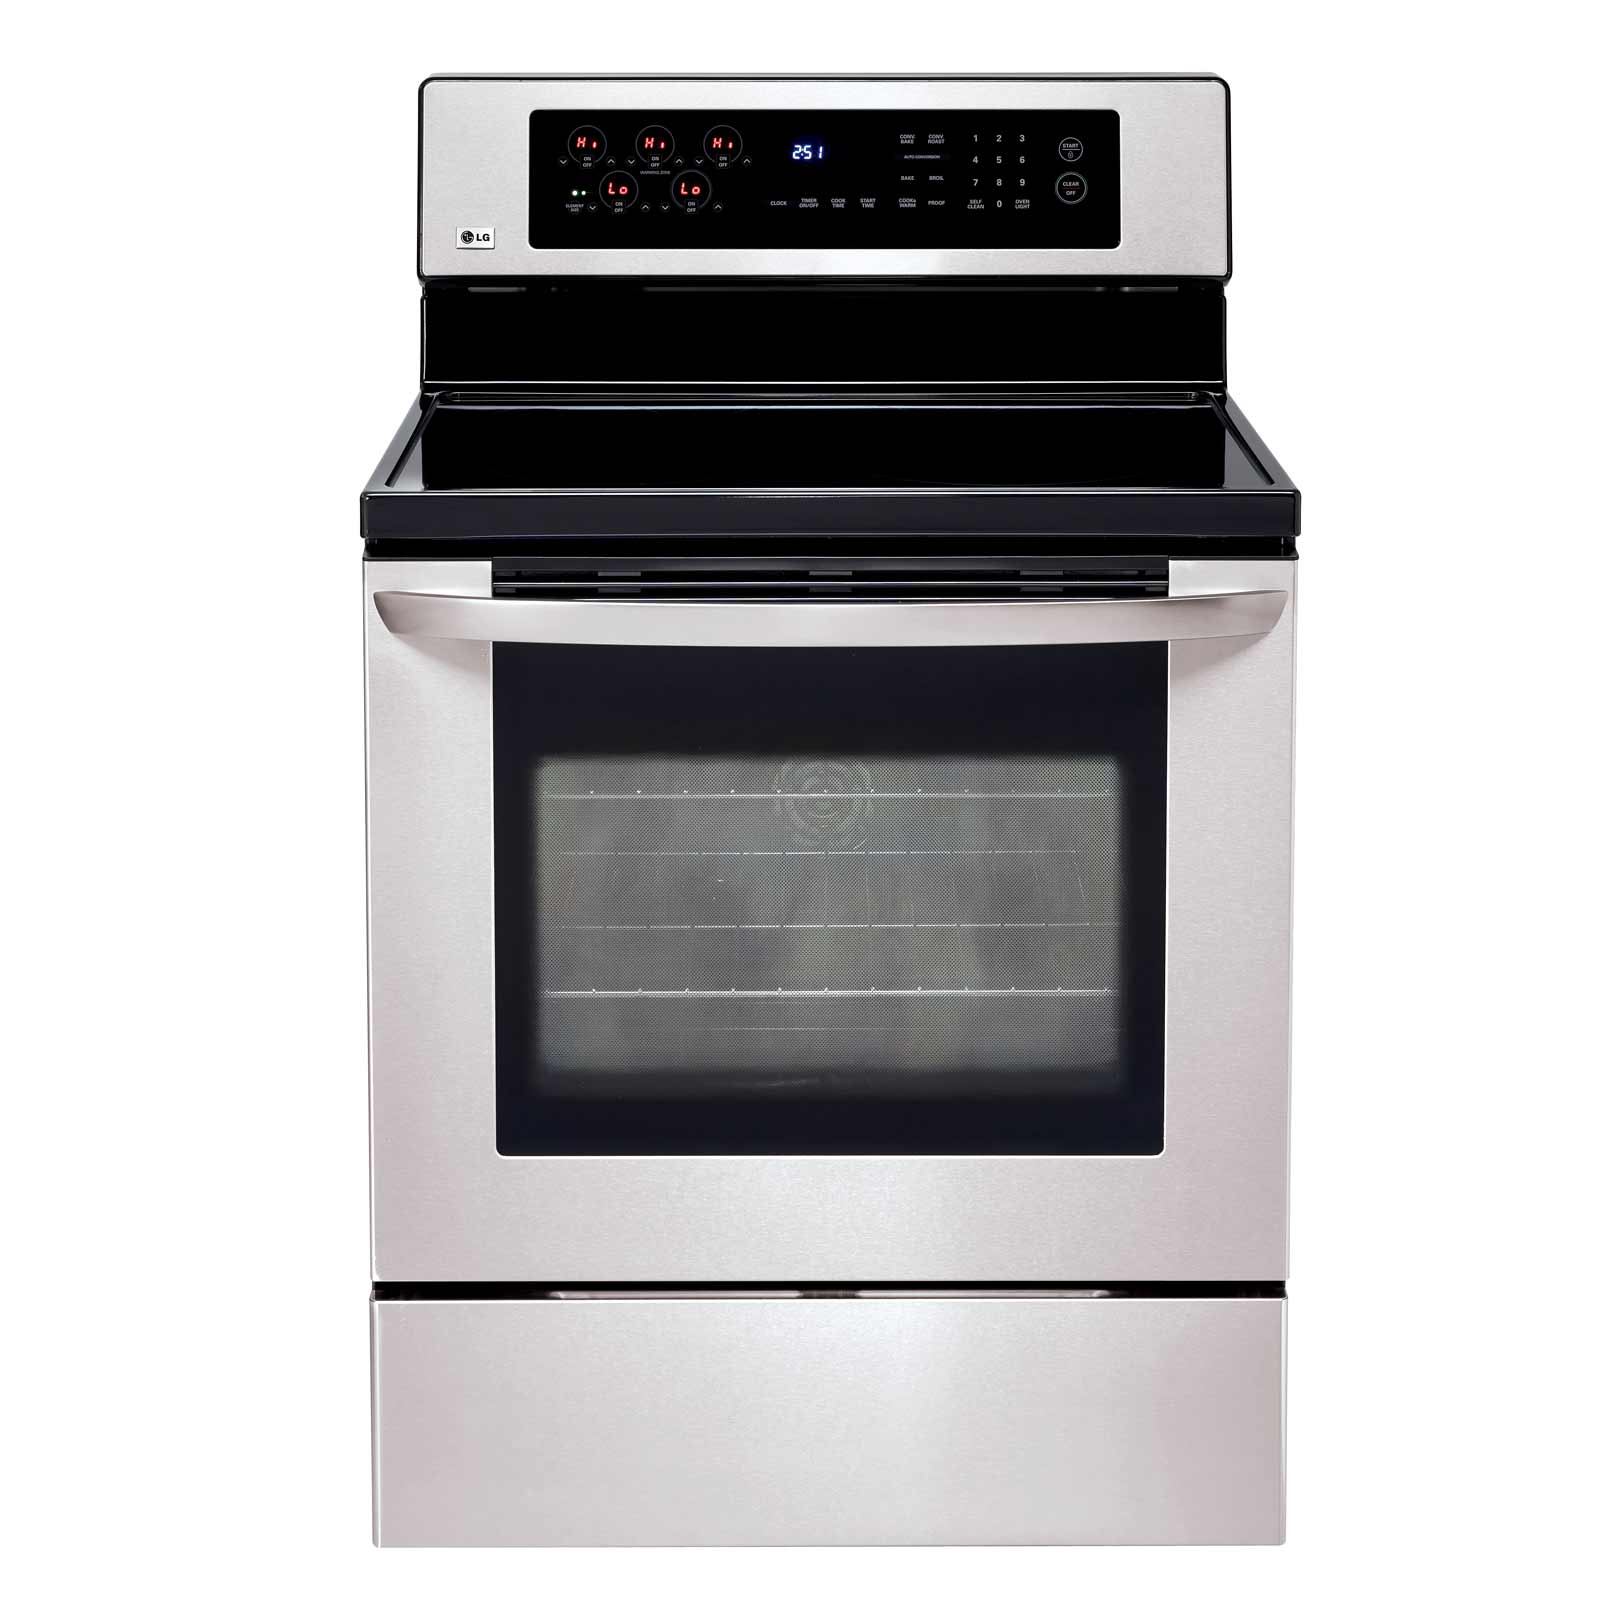 LG LRE30453ST Wide Freestanding Stainless Steel Electric Stove